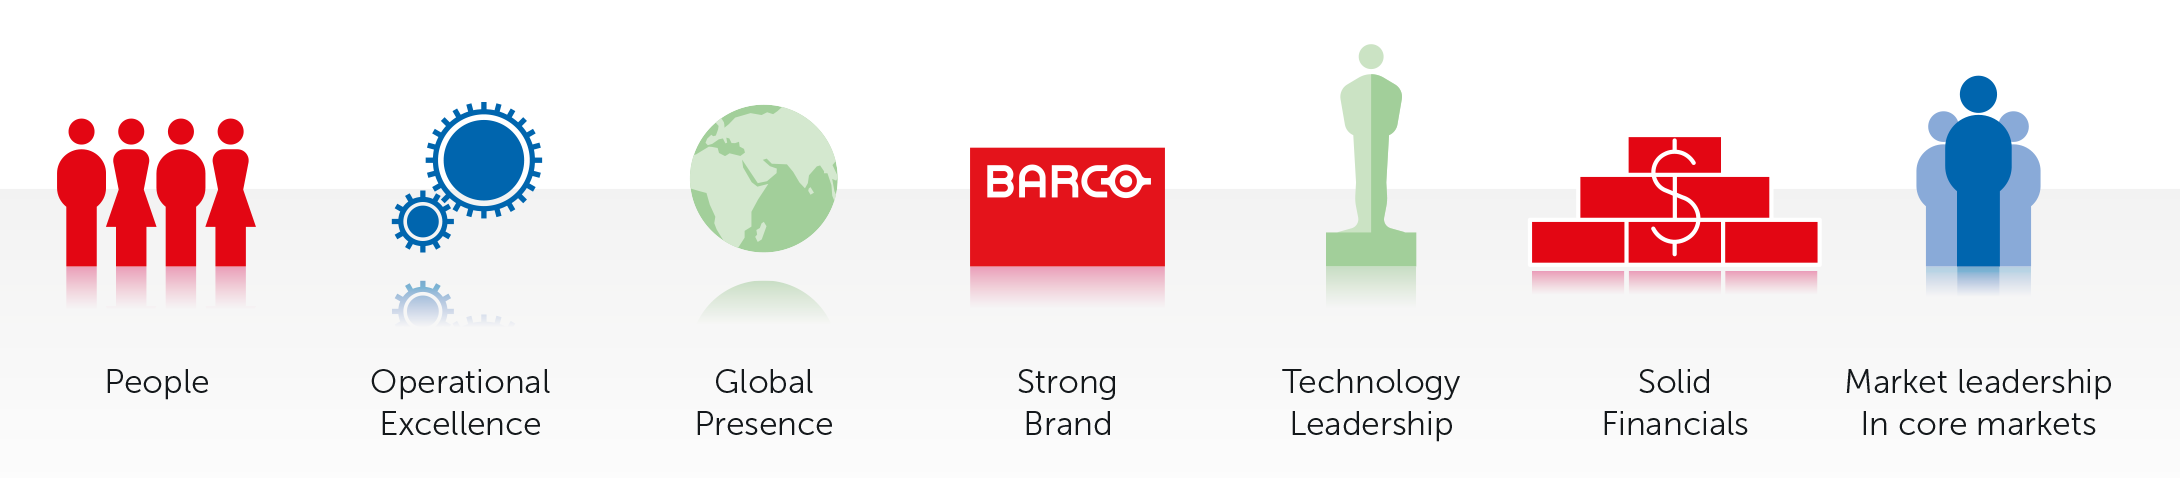 Barco strengths